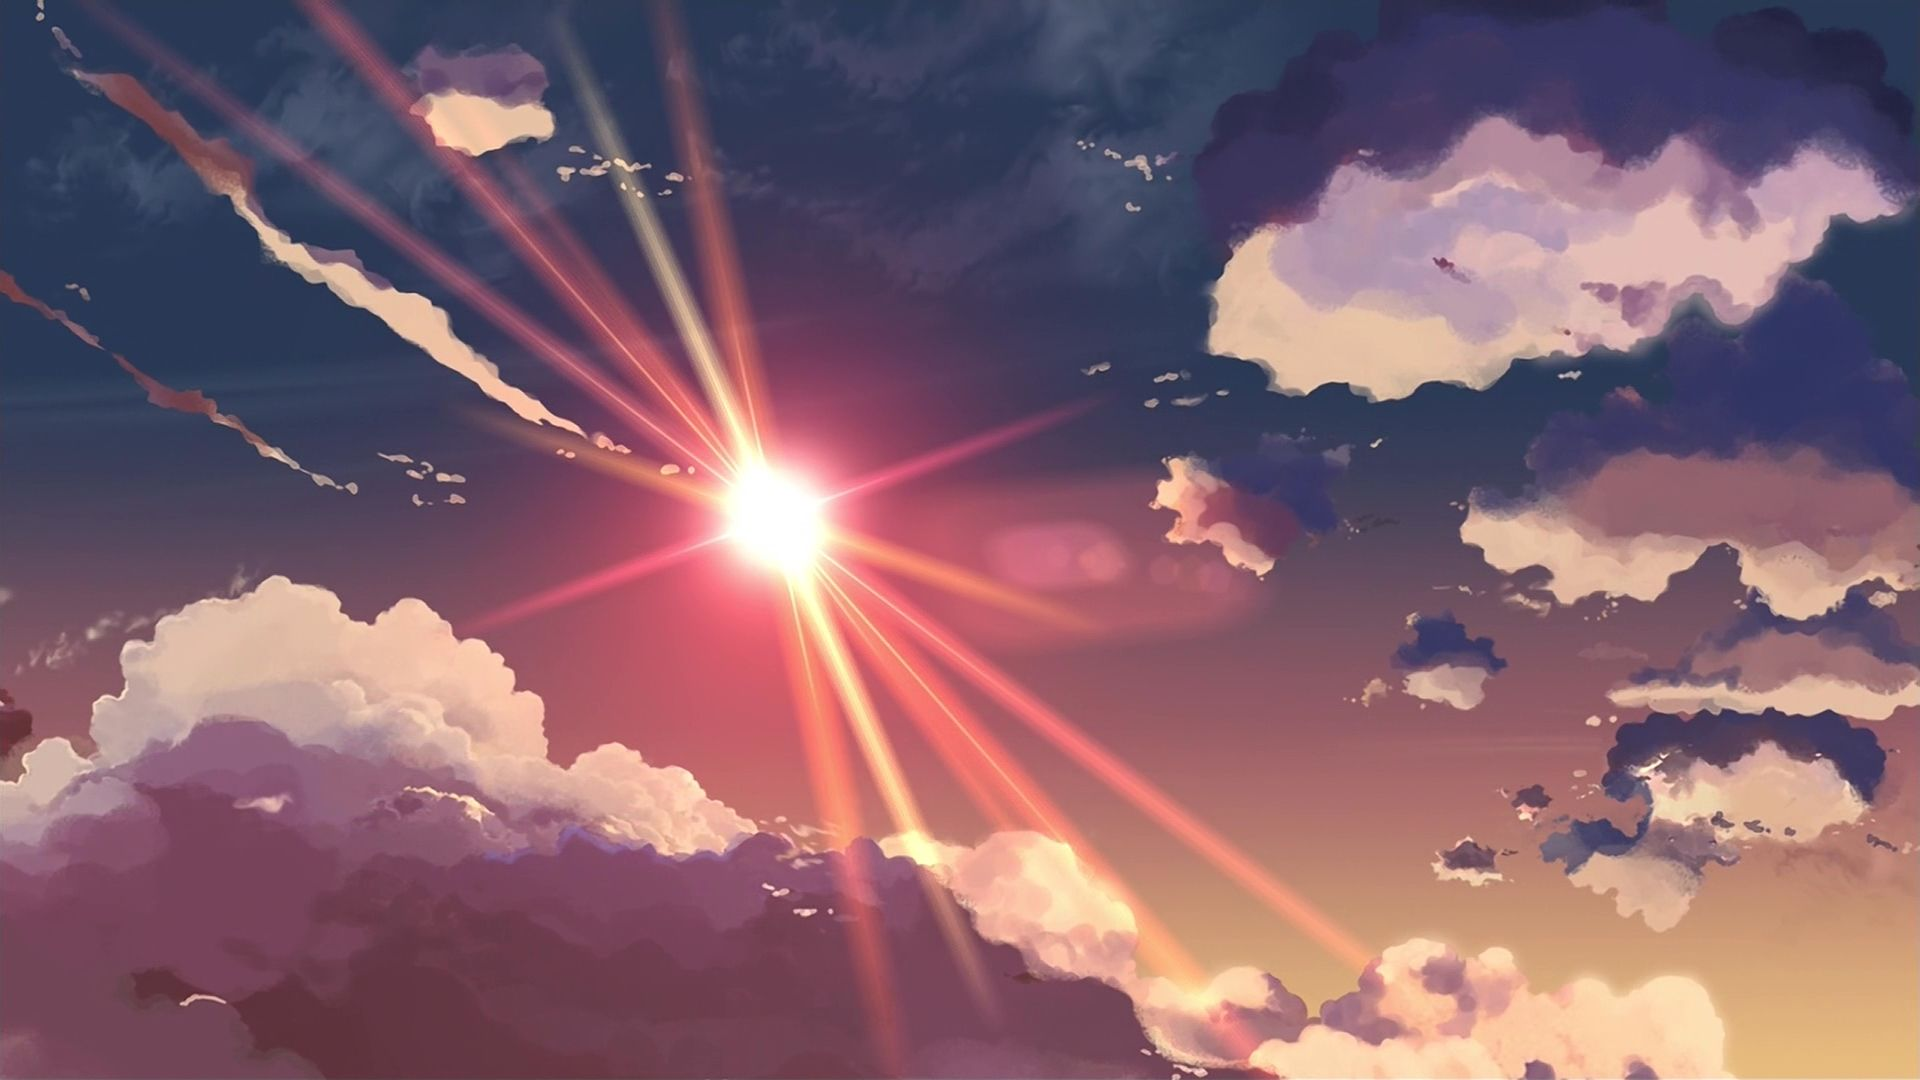 5 centimeters per second anime makoto shinkai skyscapes